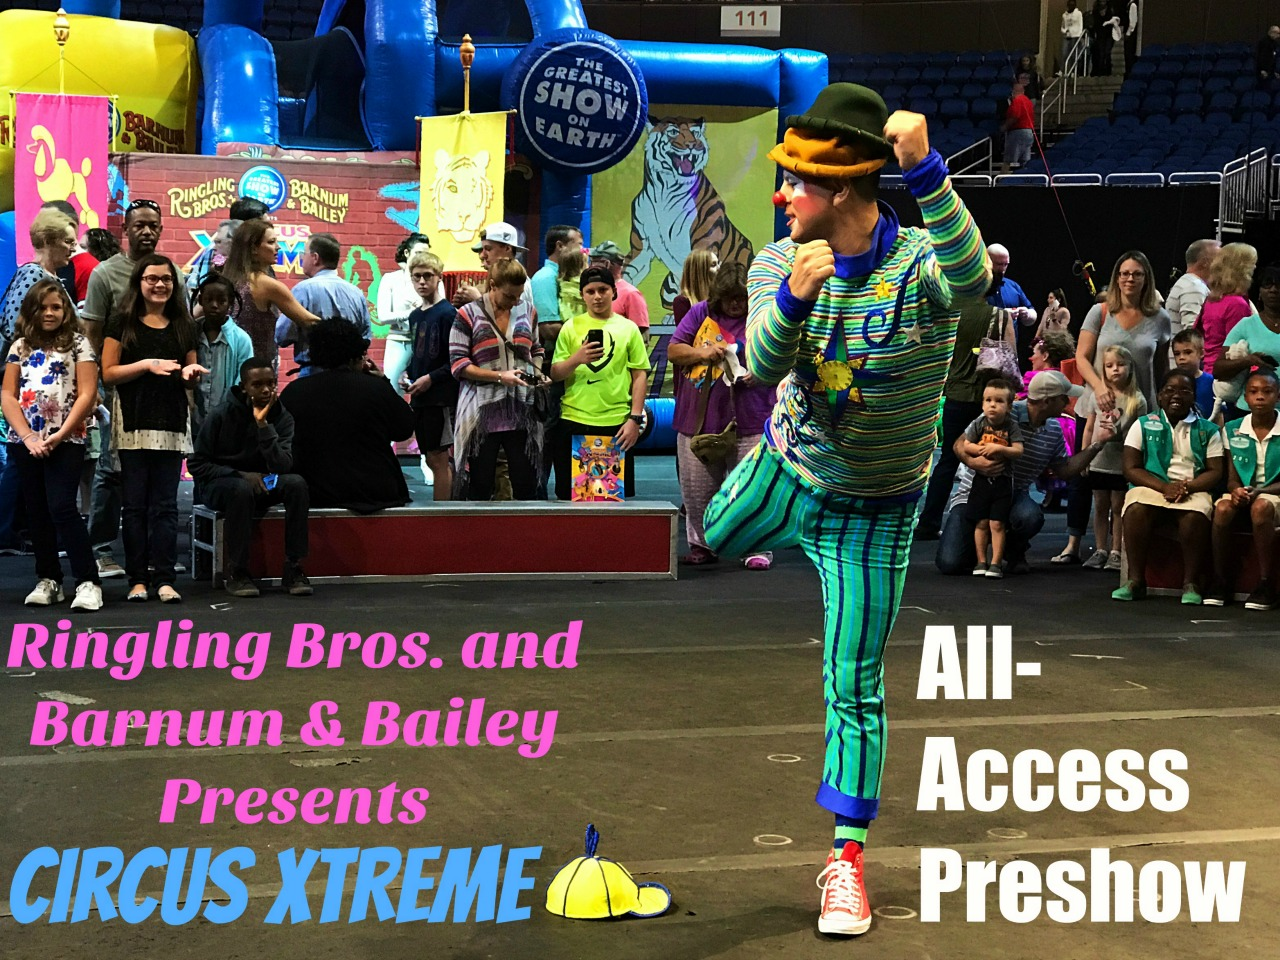 2017 Ringling Bros Circus Xtreme Preshow Video Slide